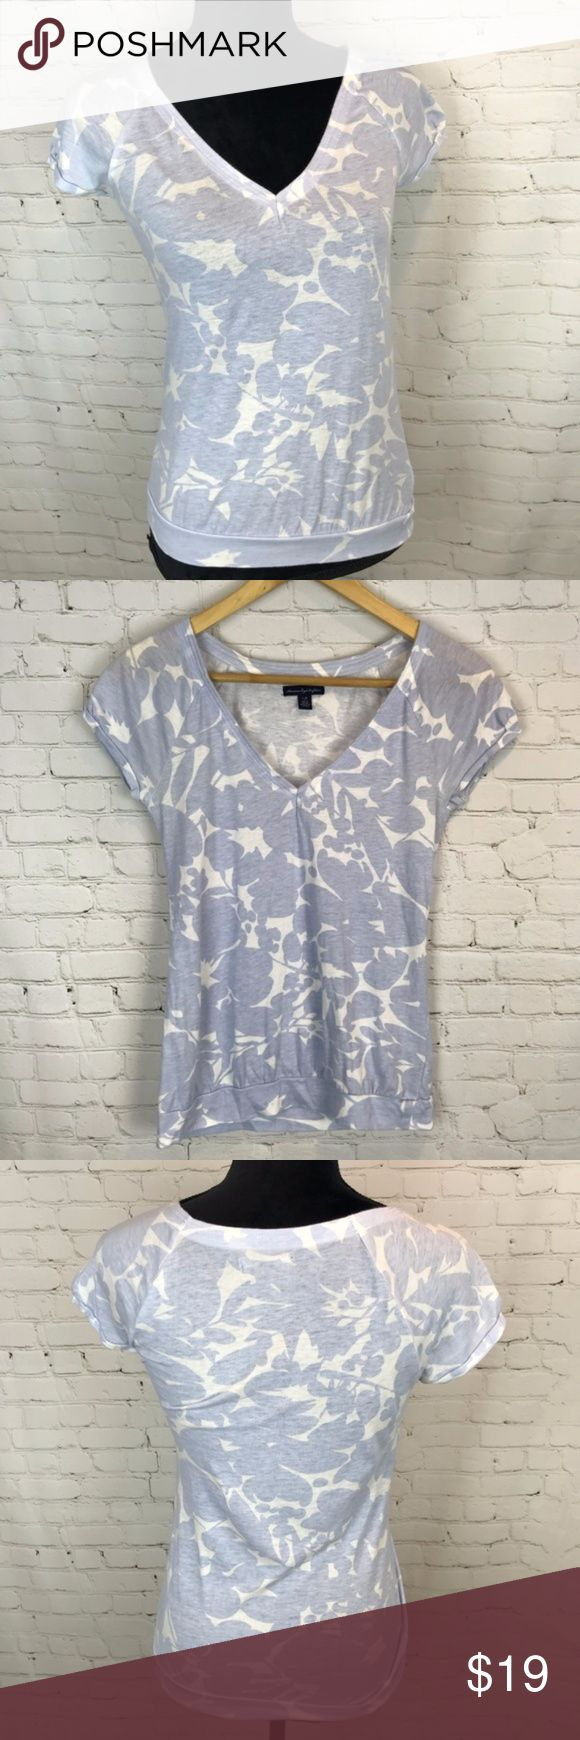 American Eagle Floral V-Neck Blue & White T-Shirt This American Eagle Outfitters top would look great for work, with a pencil shirt and heels, or paired with a pair of jeans and flats for hanging out in the weekend. The fit is very flattering. Preowned from a smoke free home, in very good used condition, with owner's name written on the inside but not visible when wearing. Check out the rest of my closet to create your own custom bundle. American Eagle Outfitters Tops Tees - Short Sleeve